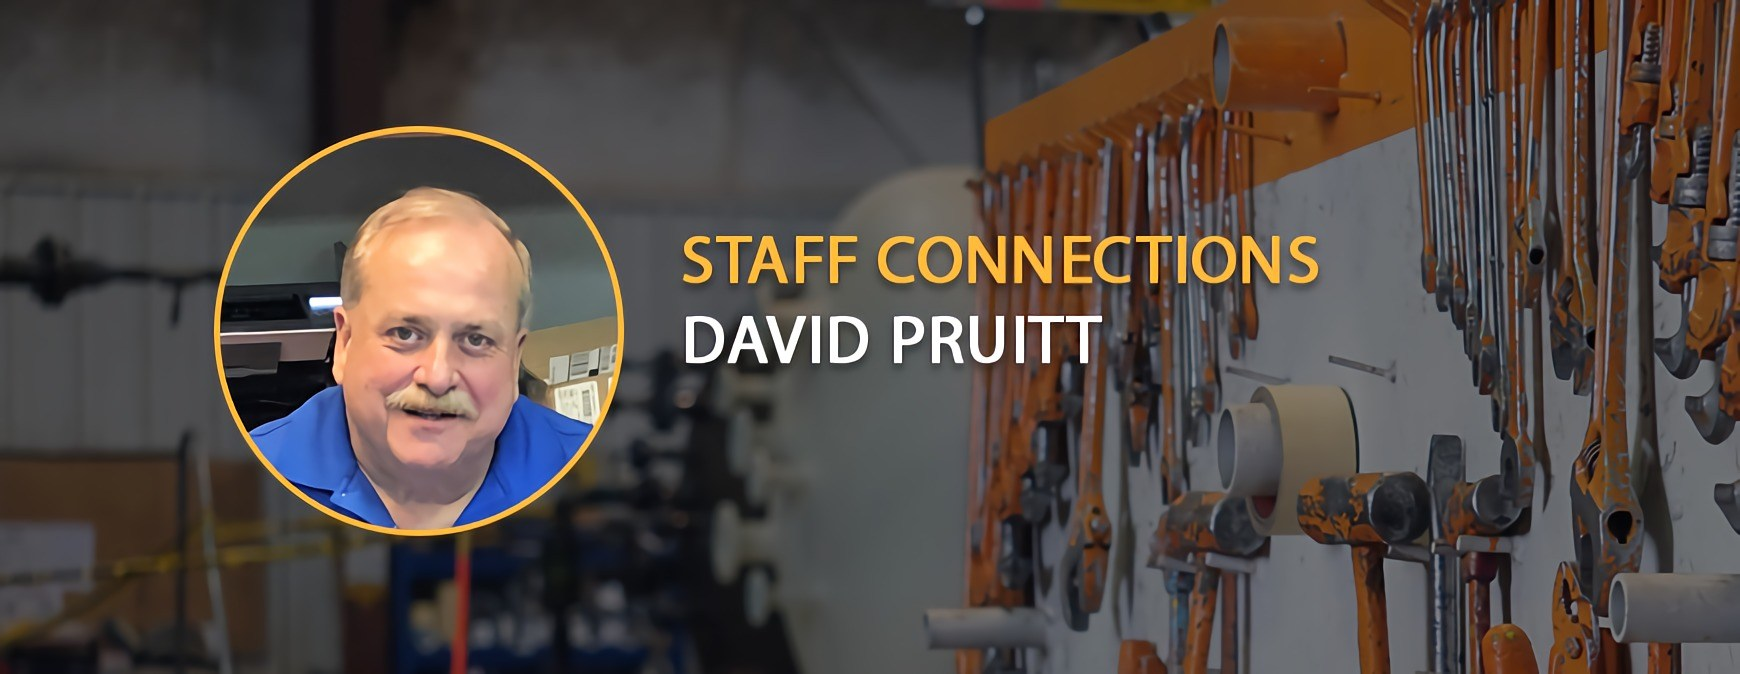 David Pruitt Staff Connection